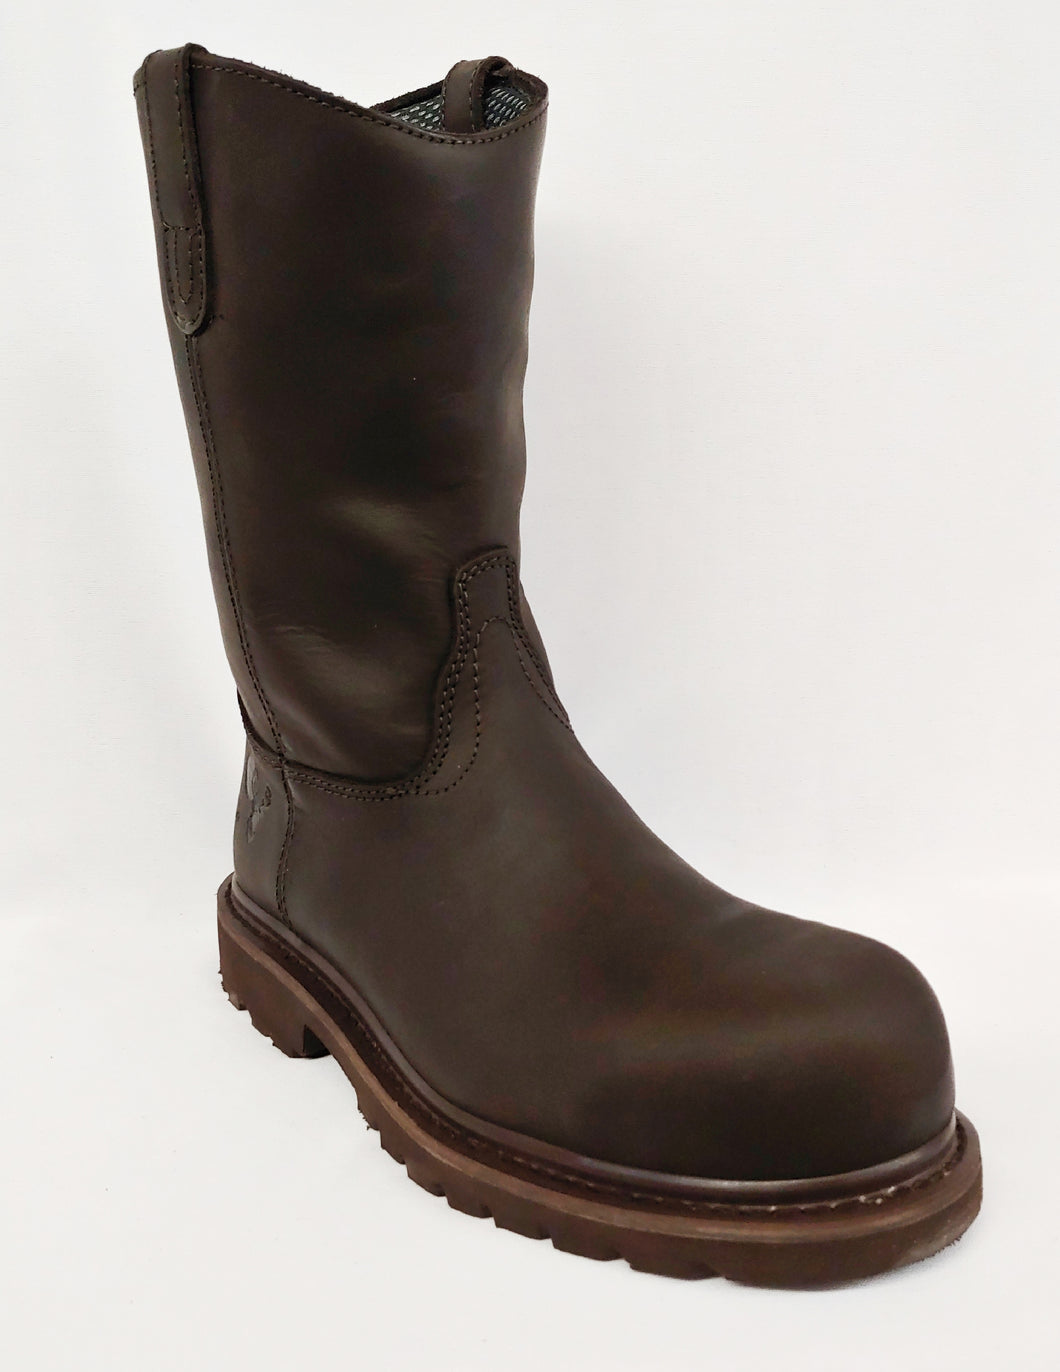 Berrendo® Mod #160 Composite Toe Tall Boot